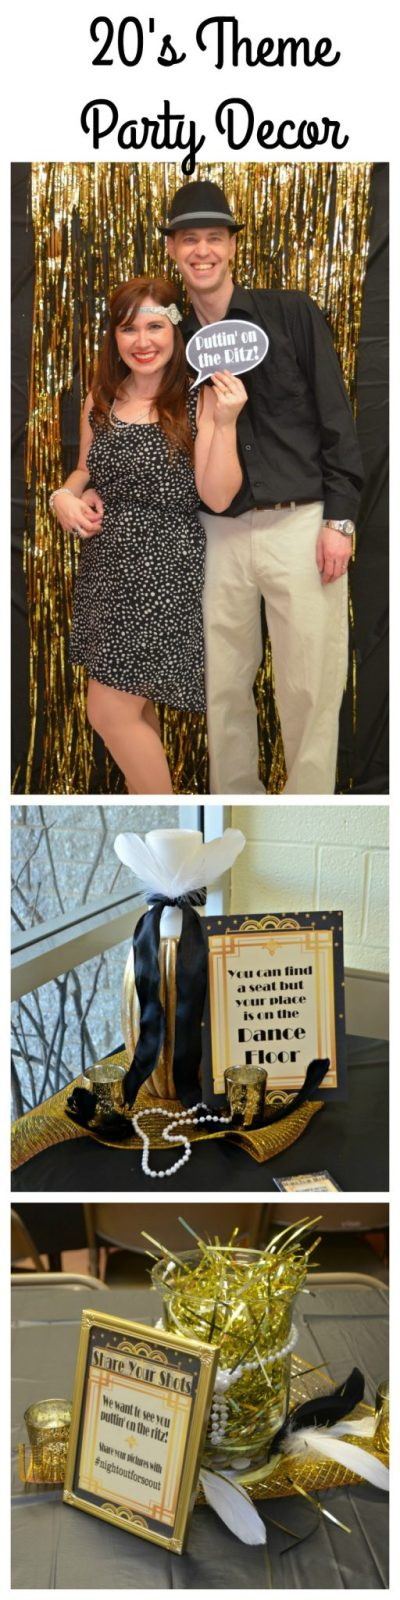 Roaring 20's Theme Party Decor